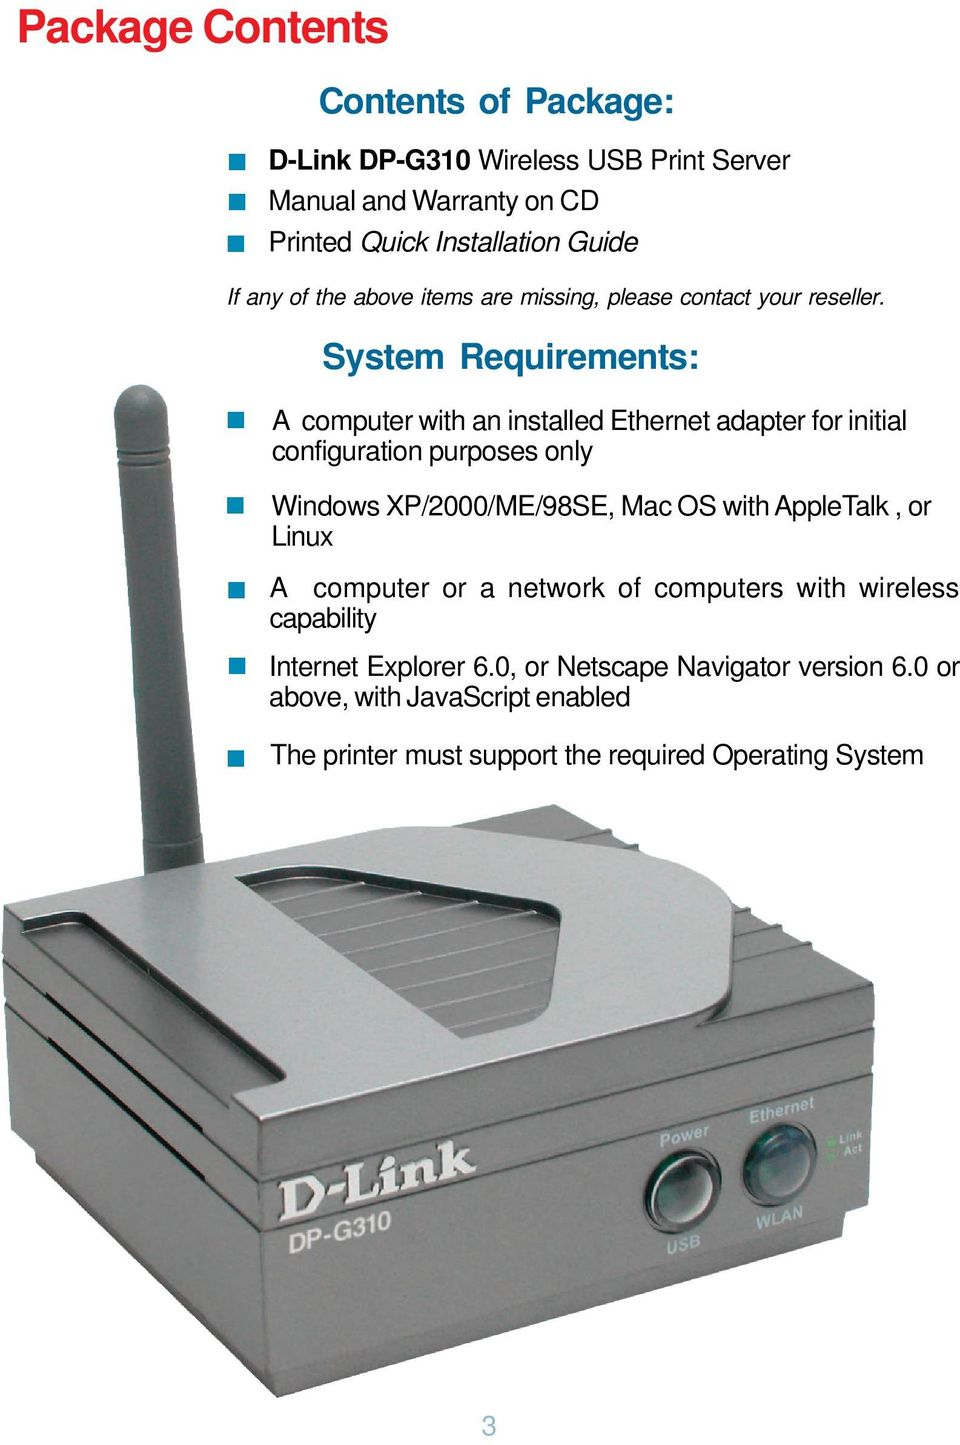 System Requirements: A computer with an installed Ethernet adapter for initial configuration purposes only Windows XP/2000/ME/98SE, Mac OS with